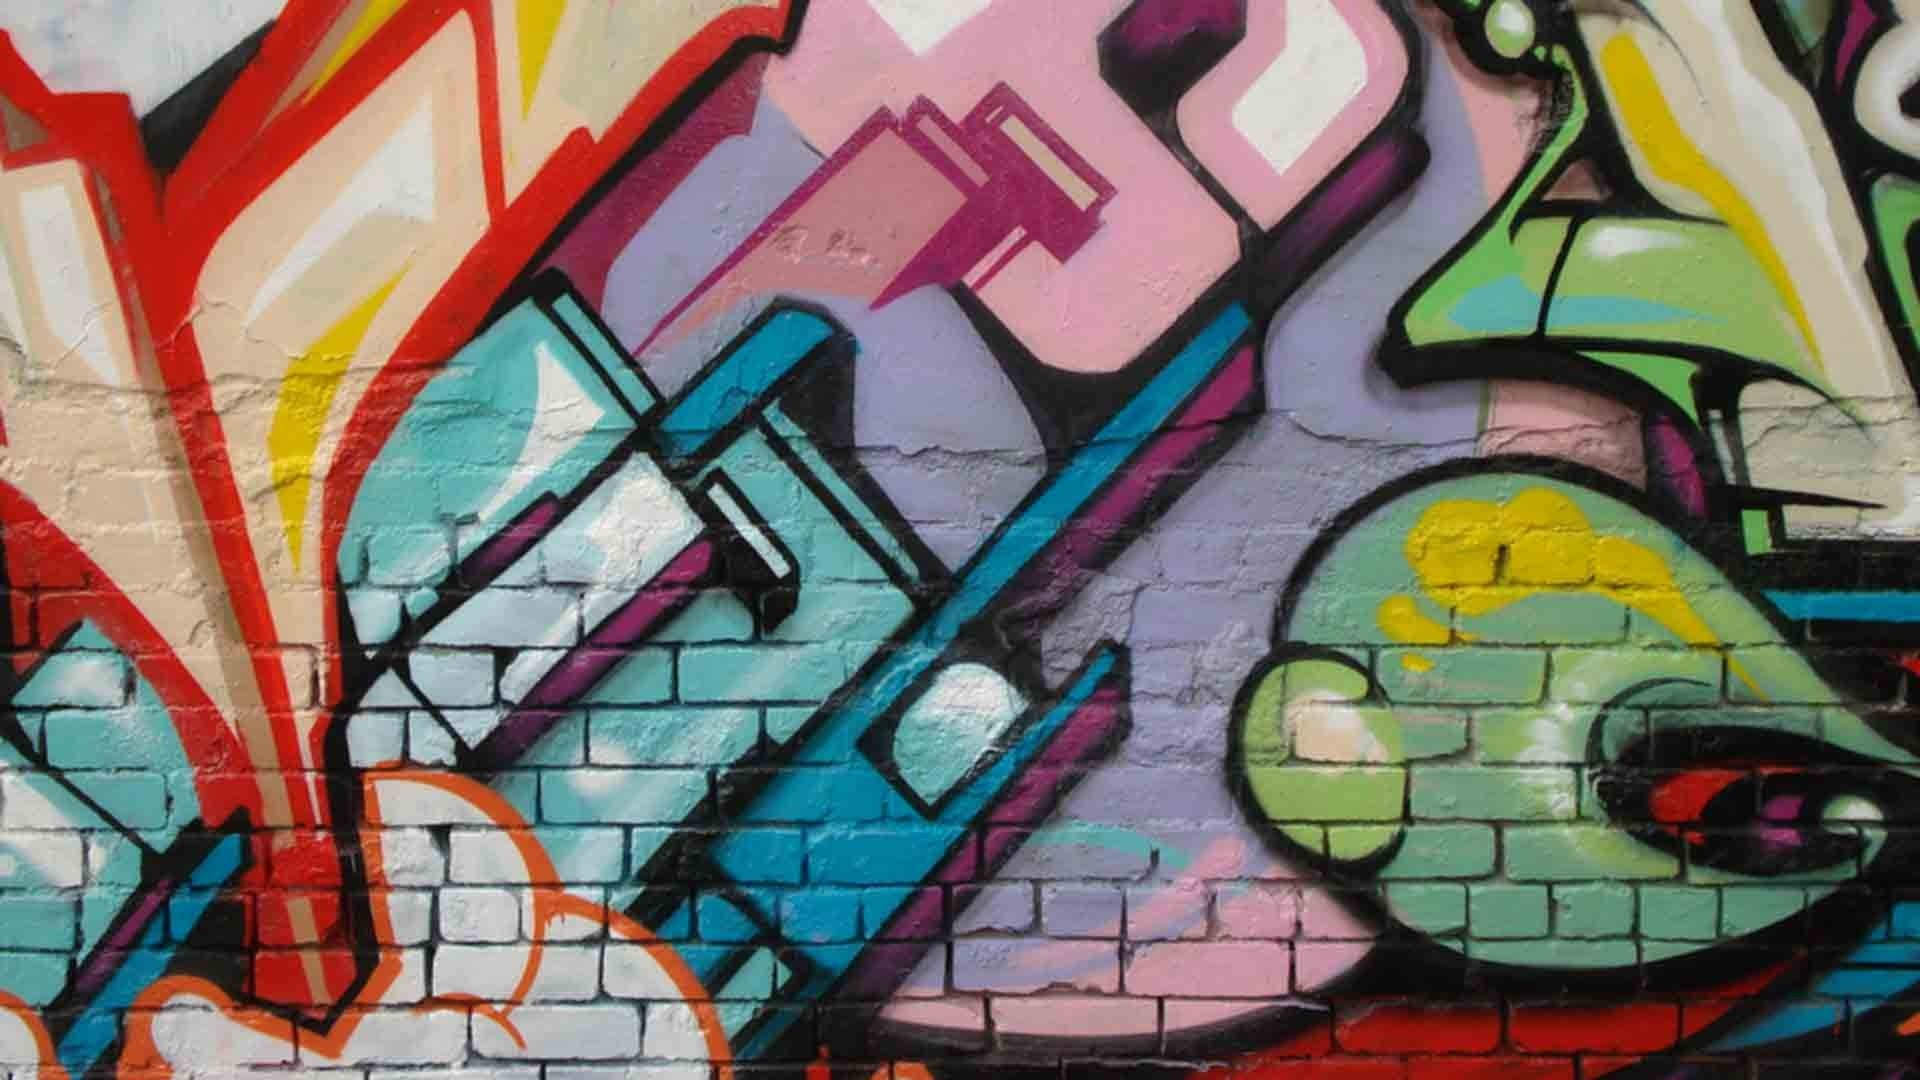 Colorful Graffiti Wallpaper Images – Uncalke.com